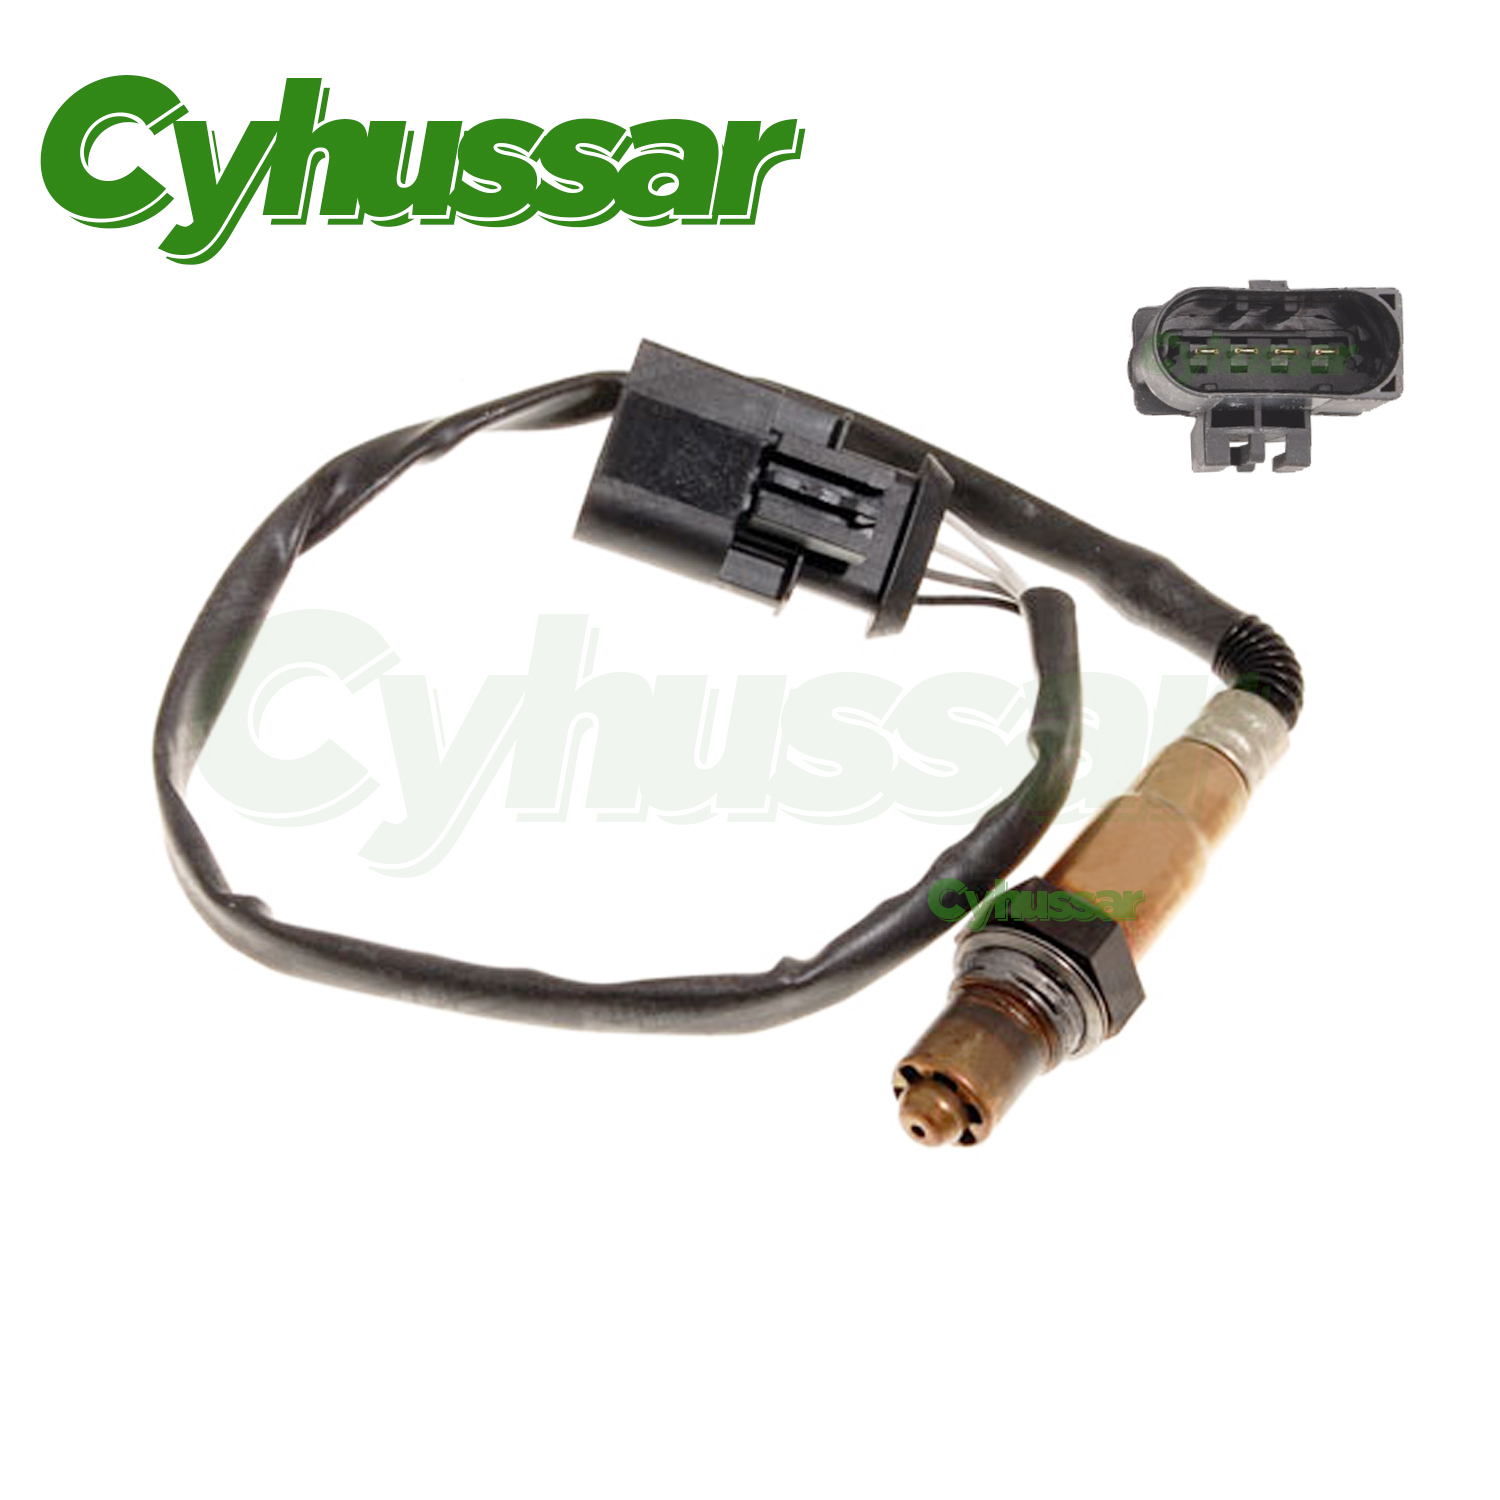 FRONT 4 WIRE UNIVERSAL LAMBDA SENSOR FOR LAND ROVER FREELANDER MG 200 25 400 45